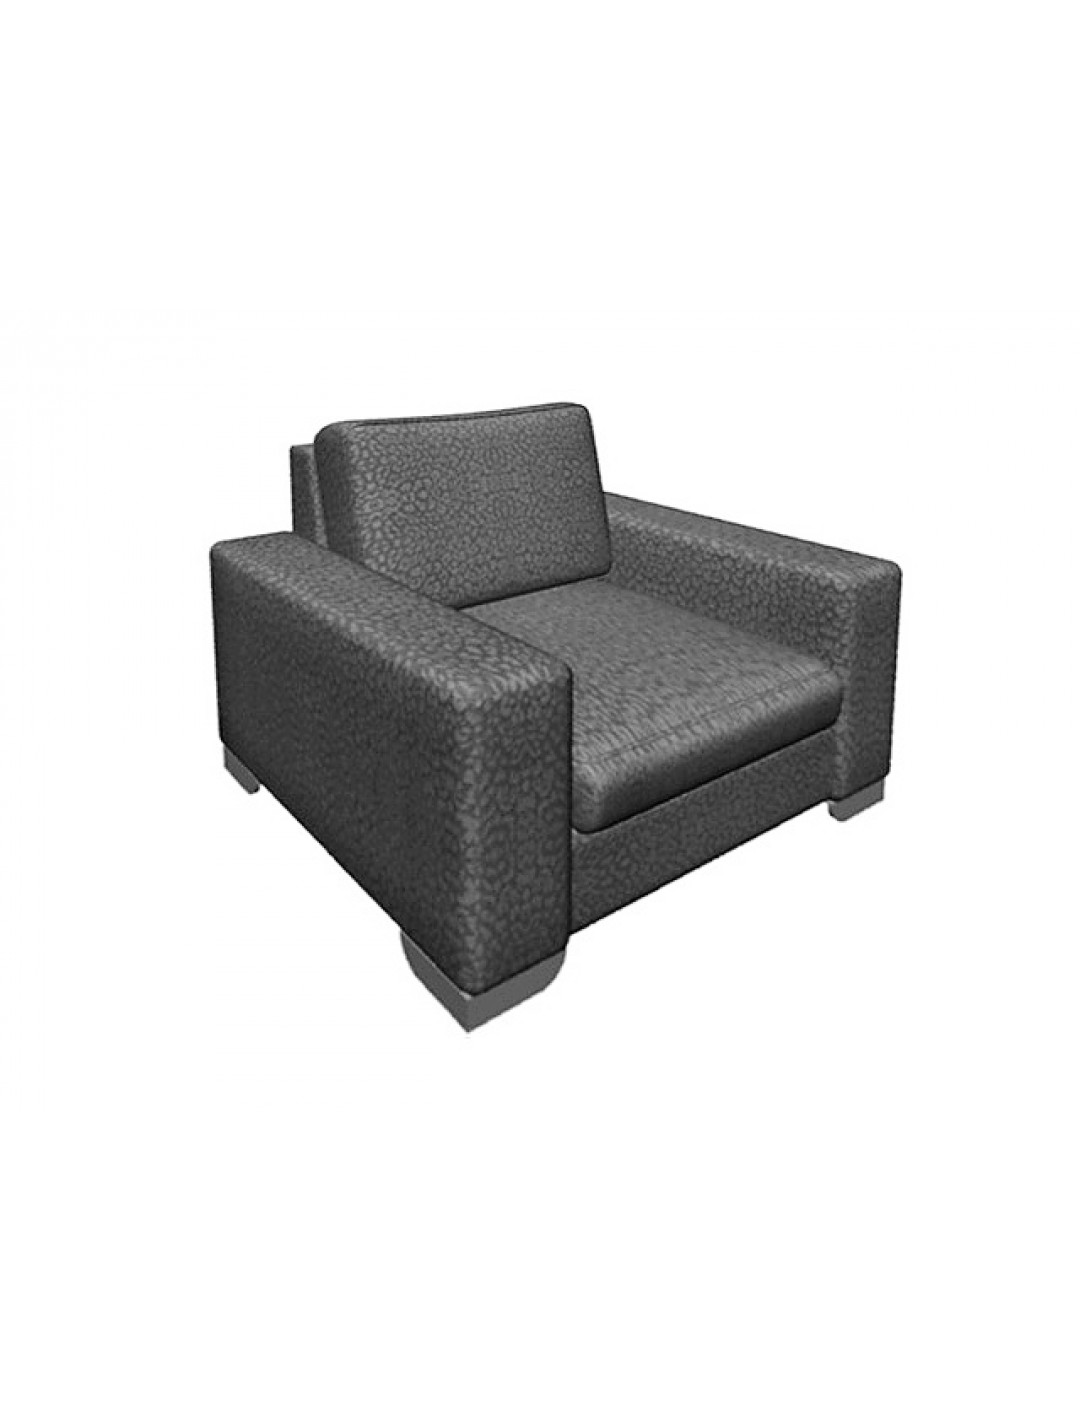 ORSON 100 ONE-SEATER SOFA, UPHOSLTERY: WITHOUT FABRIC, CHROMED ON LEGS,102X100X91H, C.O.M.